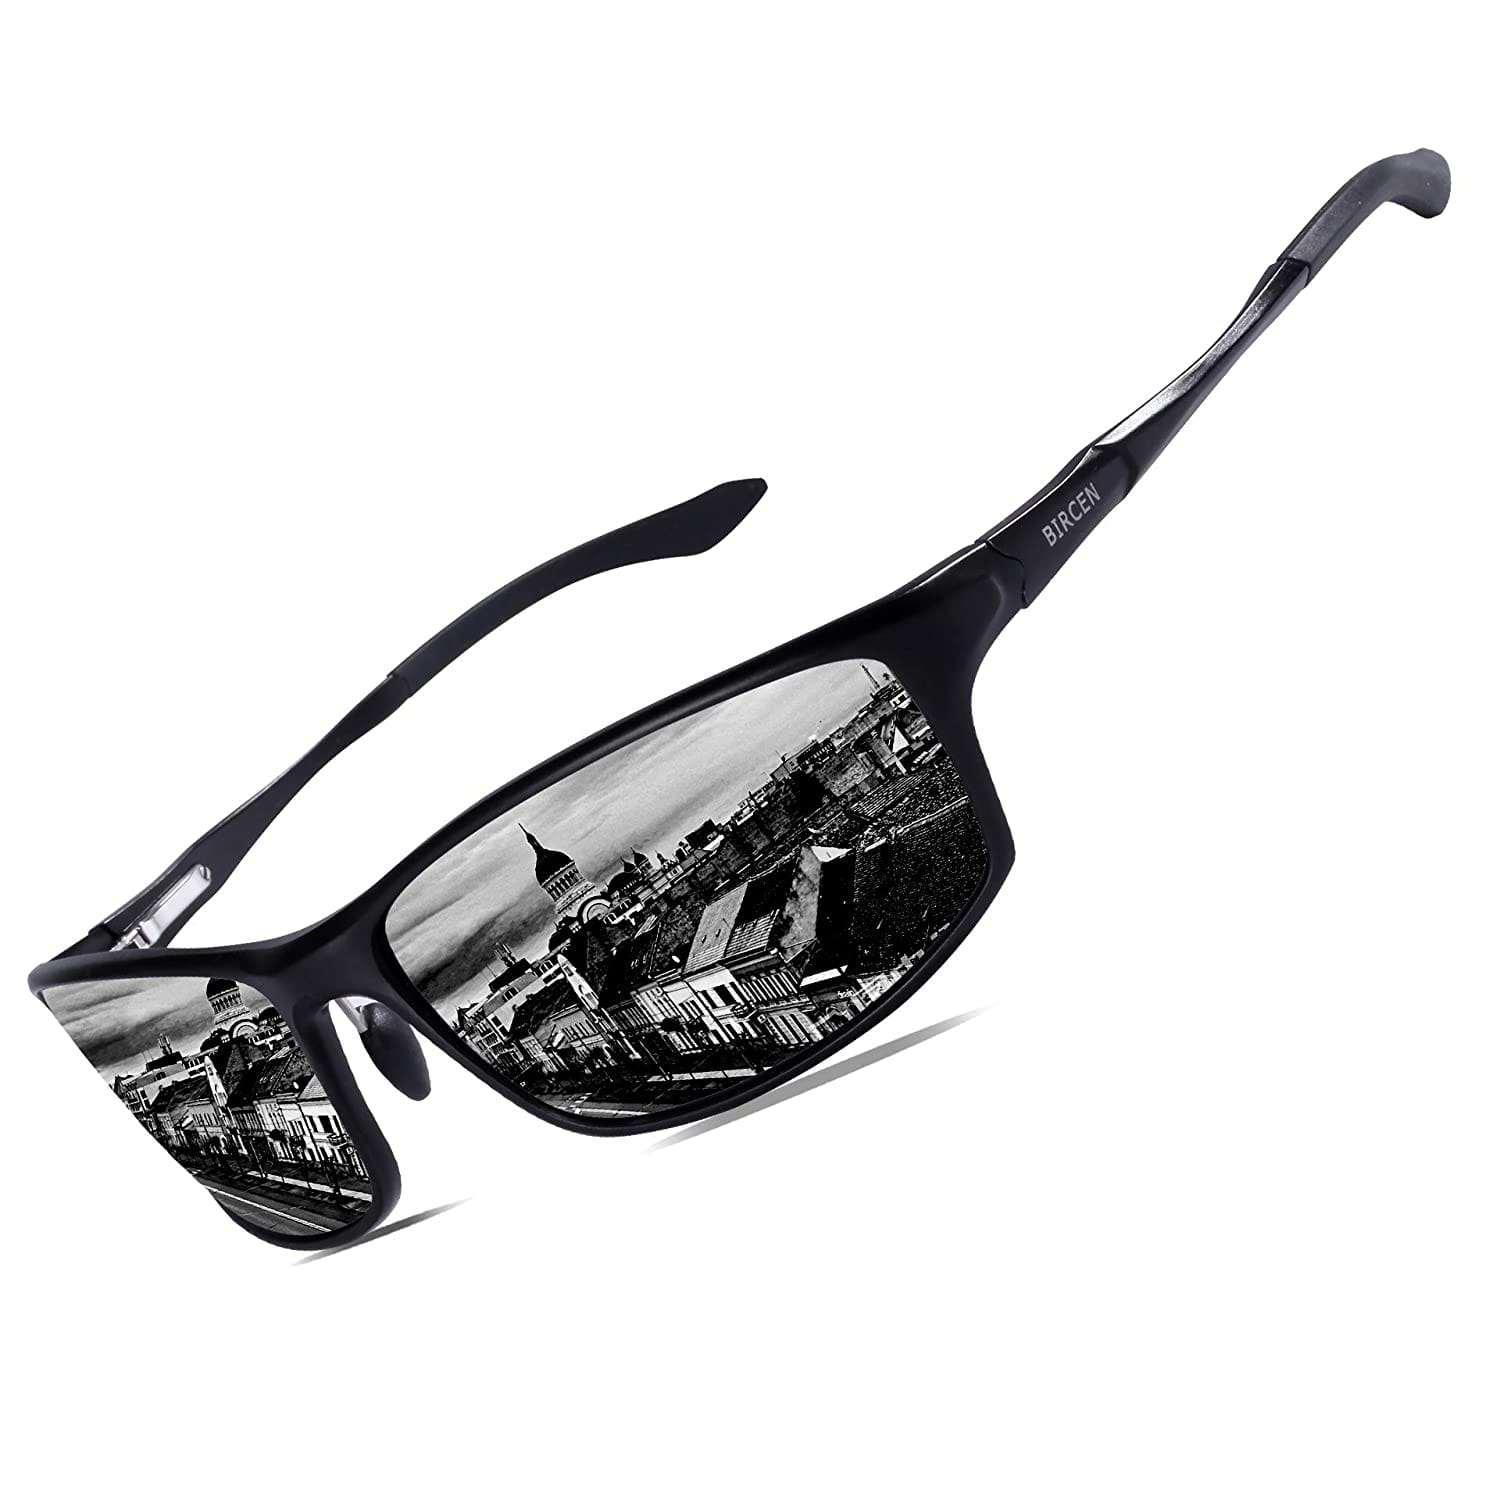 Polarized Sunglasses with UV Protection $12.49 a/c + free Prime shipping